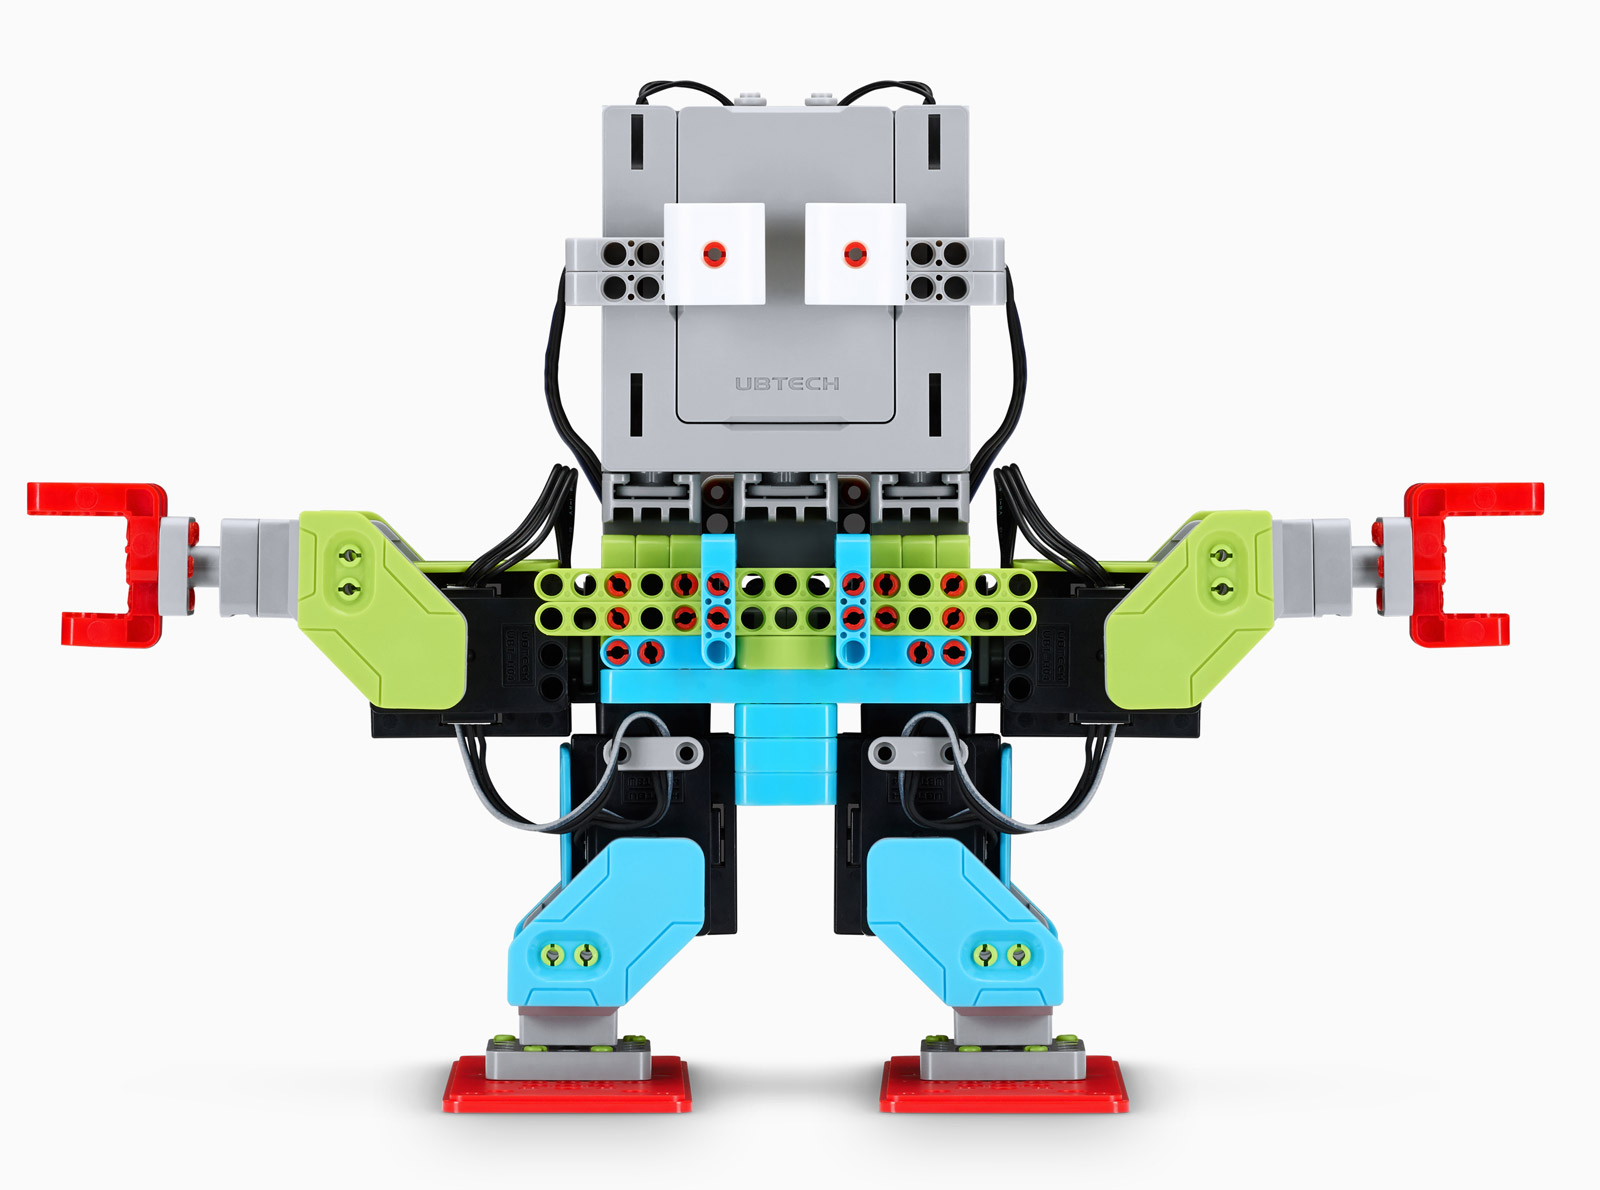 Robots controlables con Swift Playgrounds